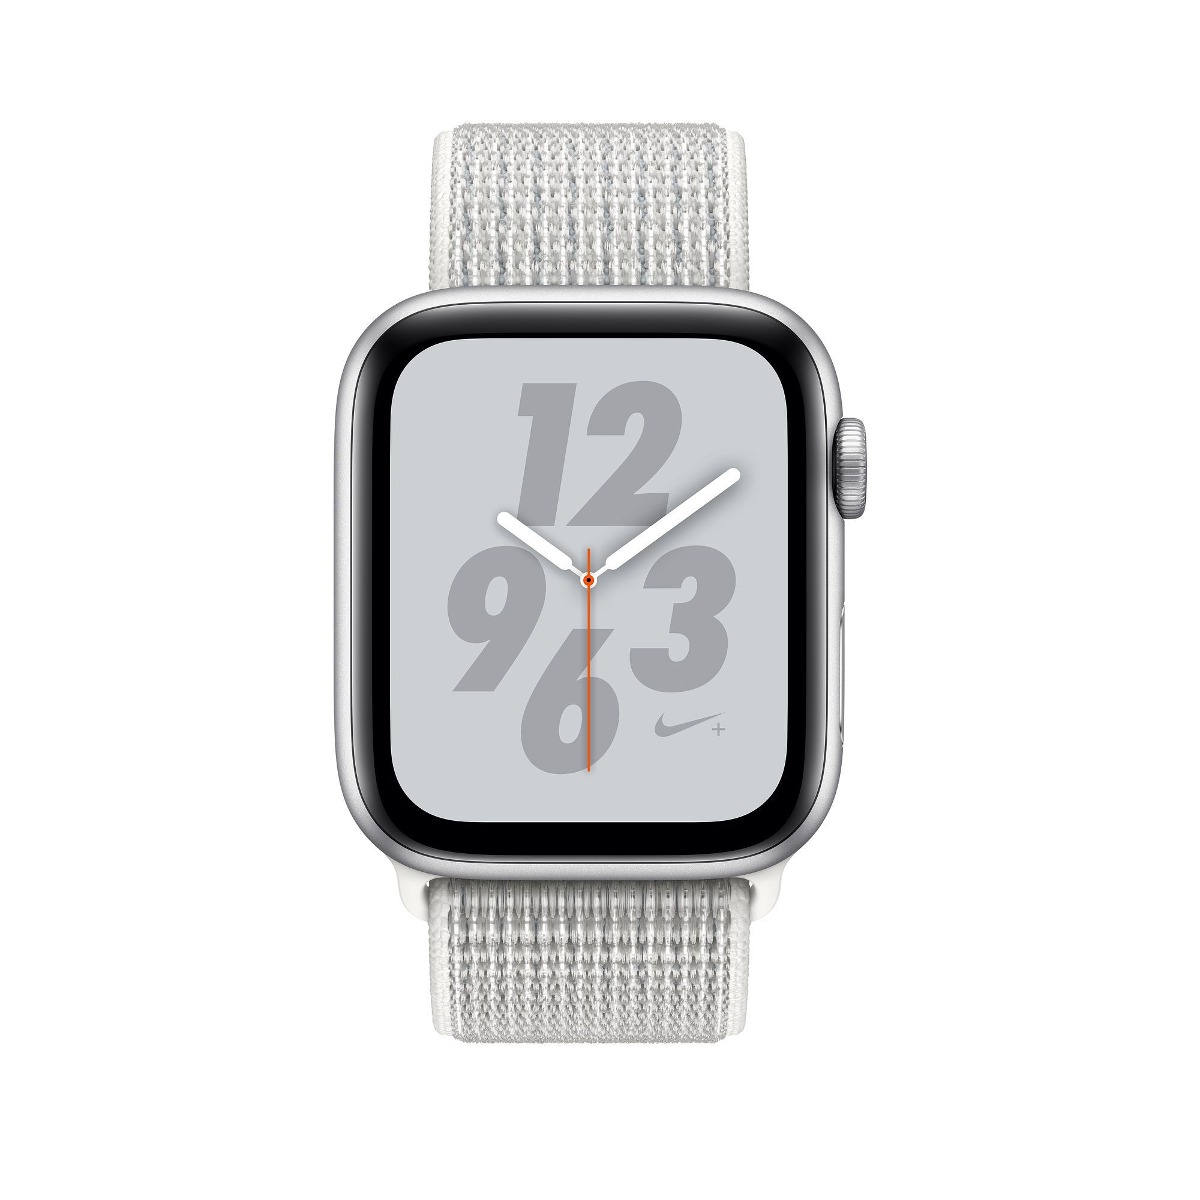 587034a2c3d apple watch s4 nike 44mm gps prata pulseira nike loop branca. Carregando  zoom.